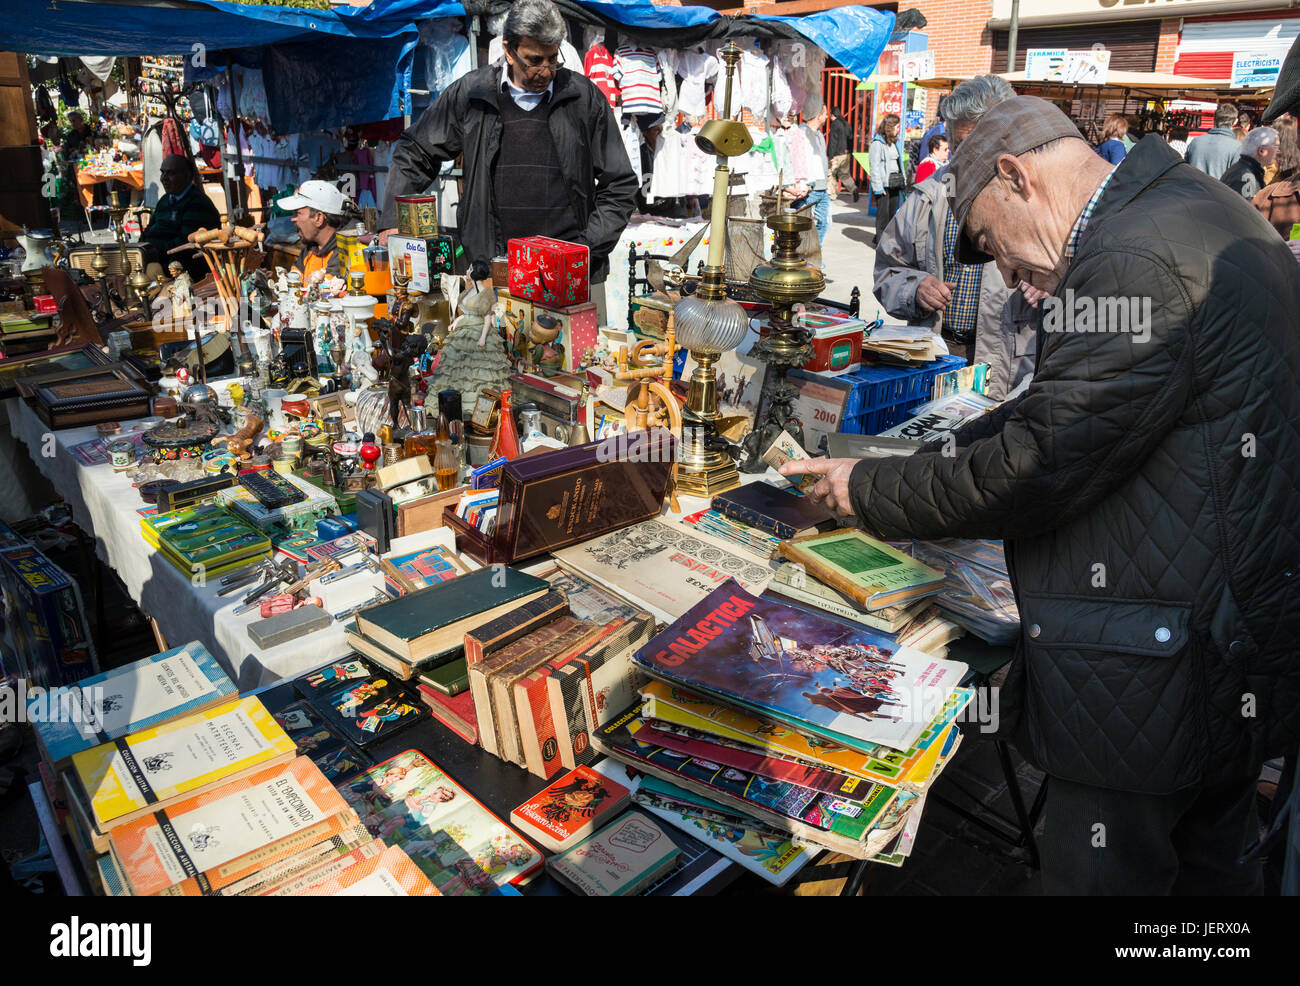 A stall in the Rastro flea market around Lavapies and Embajadores in the centre of Madrid, Spain. - Stock Image